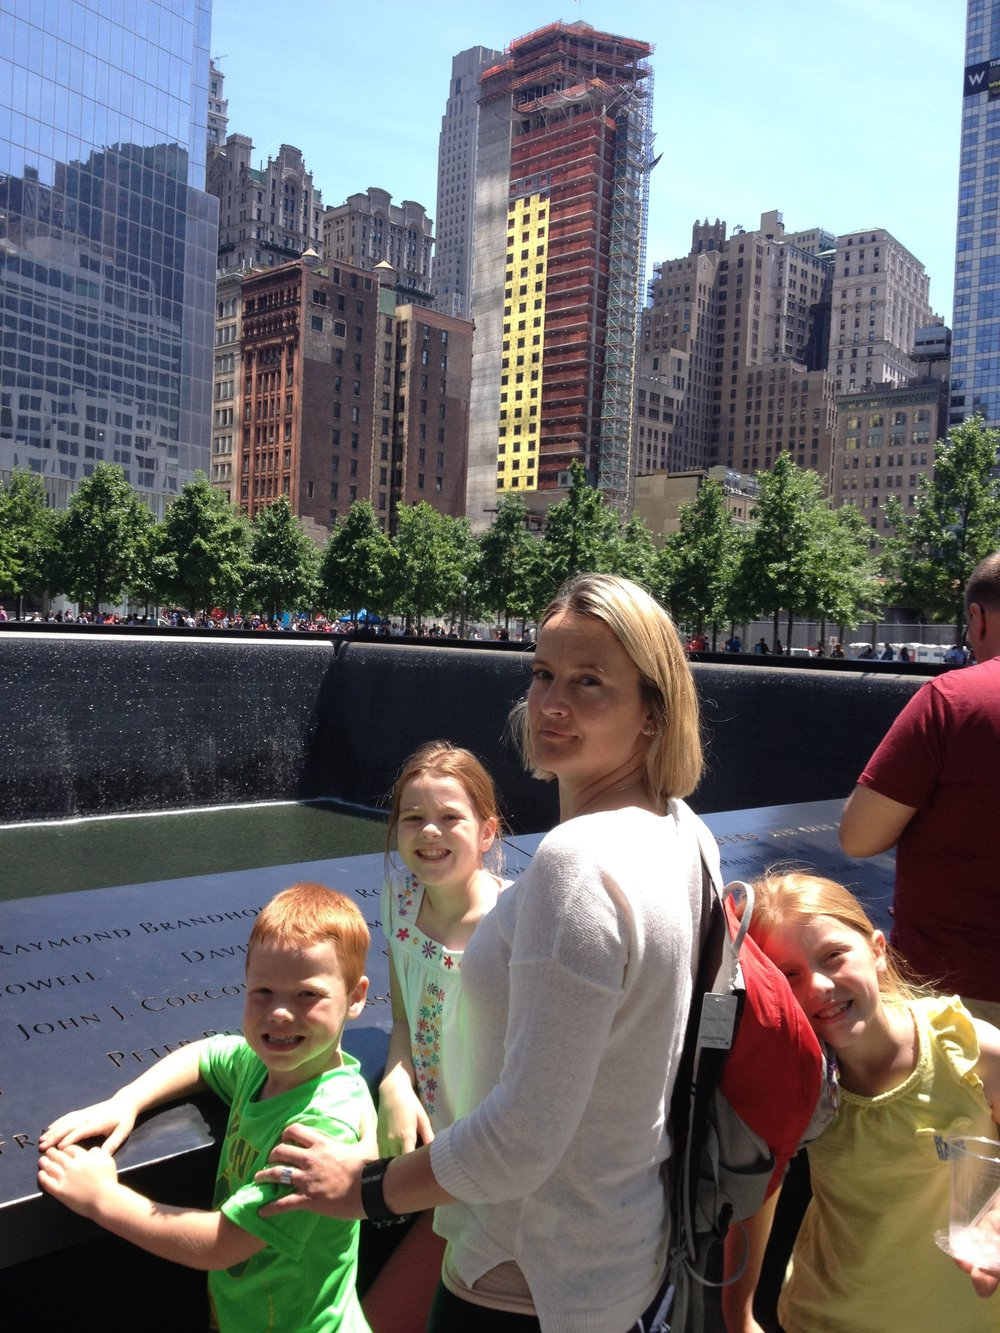 My nieces and nephews and me at the 9/11 Memorial in 2015 when they were 6, 8, and 10. As you can see, they have so little understanding of the impacts of 9/11 at that age that it did not occur to them that smiling might be inappropriate.